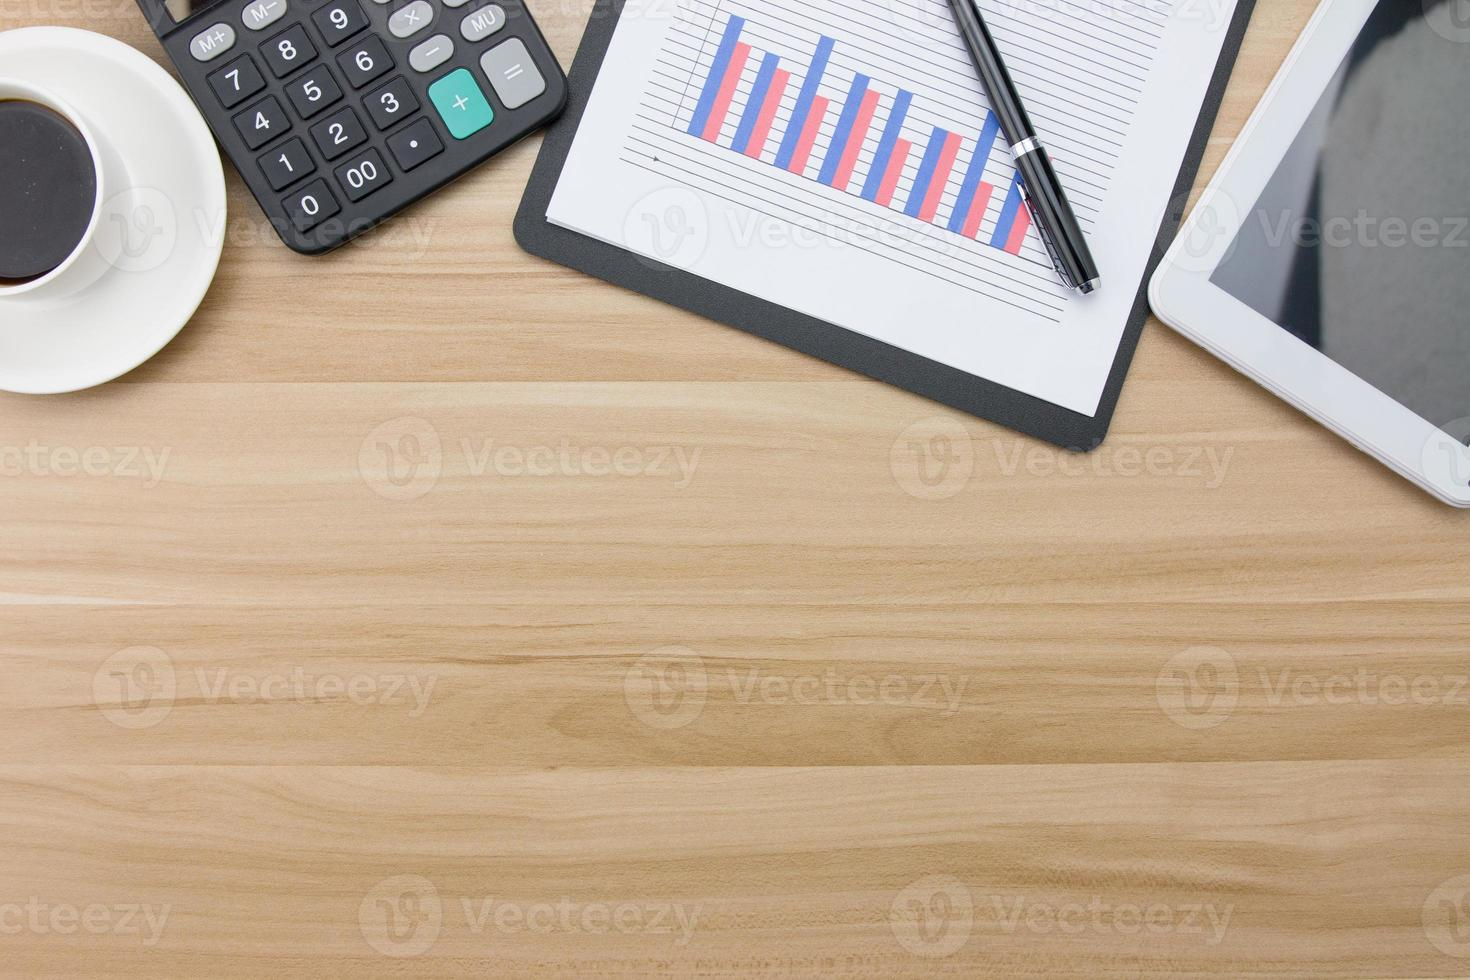 Office supplies on the wooden desk photo